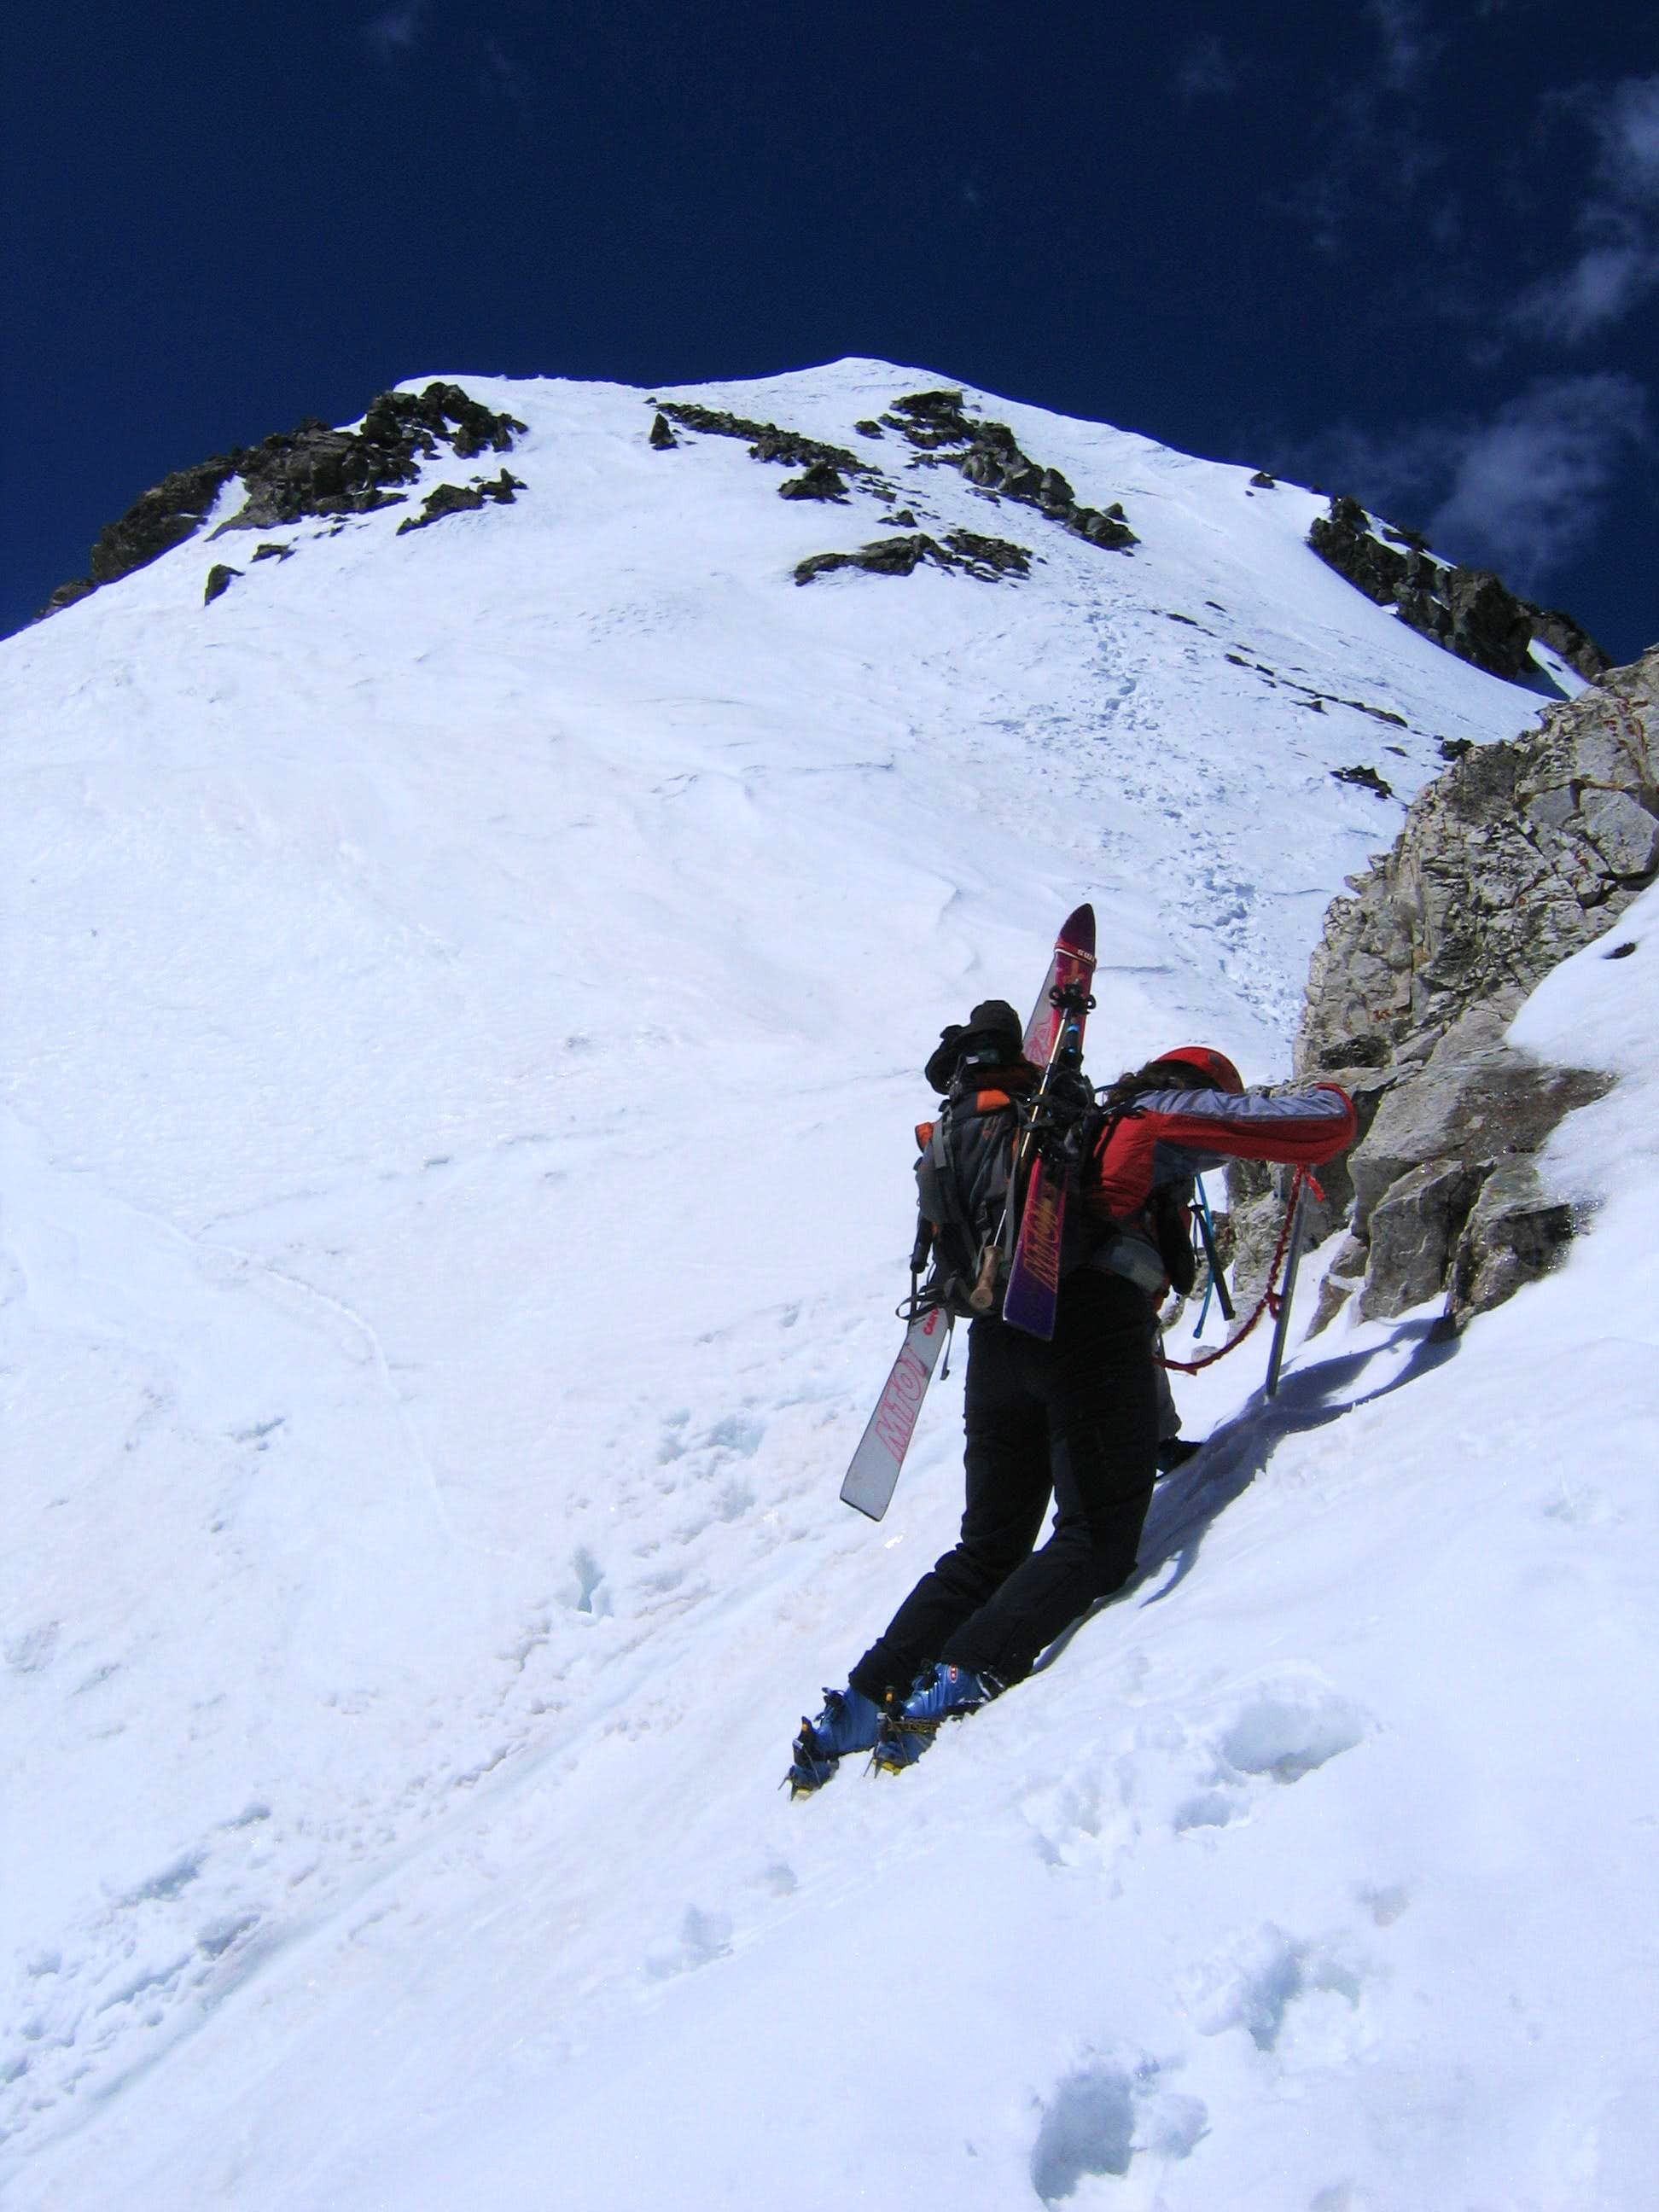 Eroica to Snowboard Descent of NW Couloir